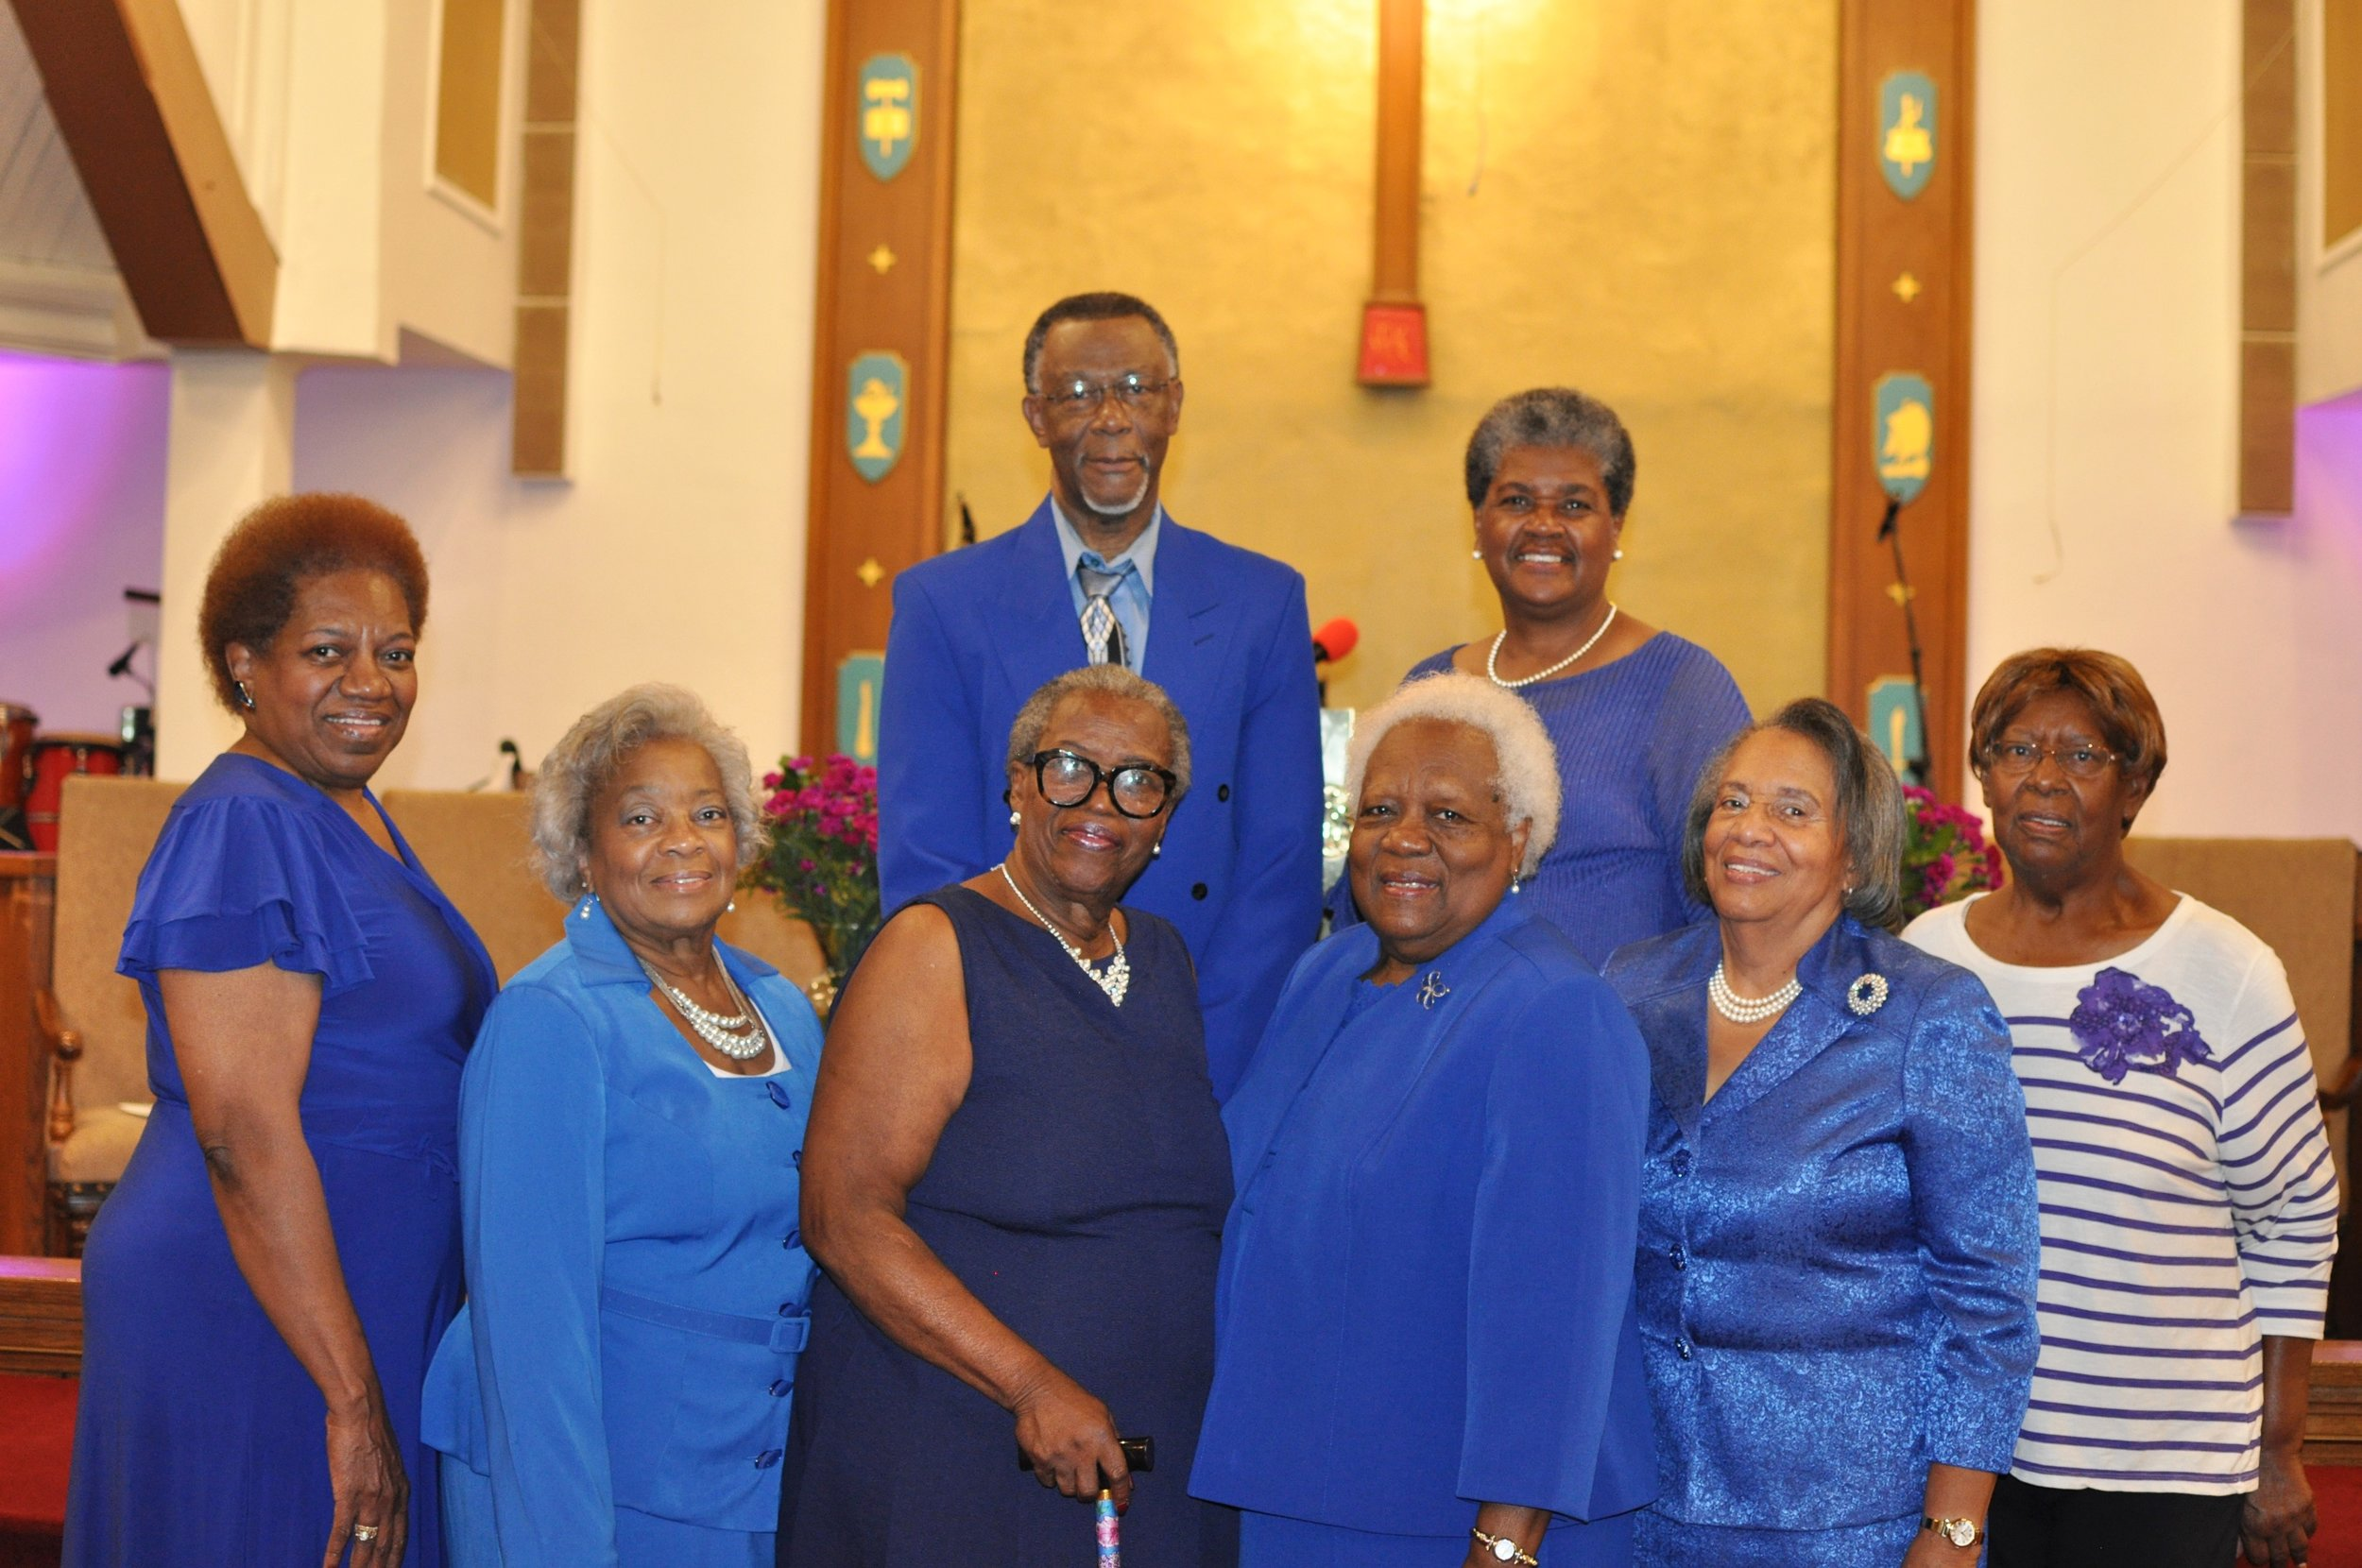 The Lay Organization of the AME Church is commissioned to  teach, train and empower  its members for lay ministry, and global leadership and service following the tenets of Jesus Christ.